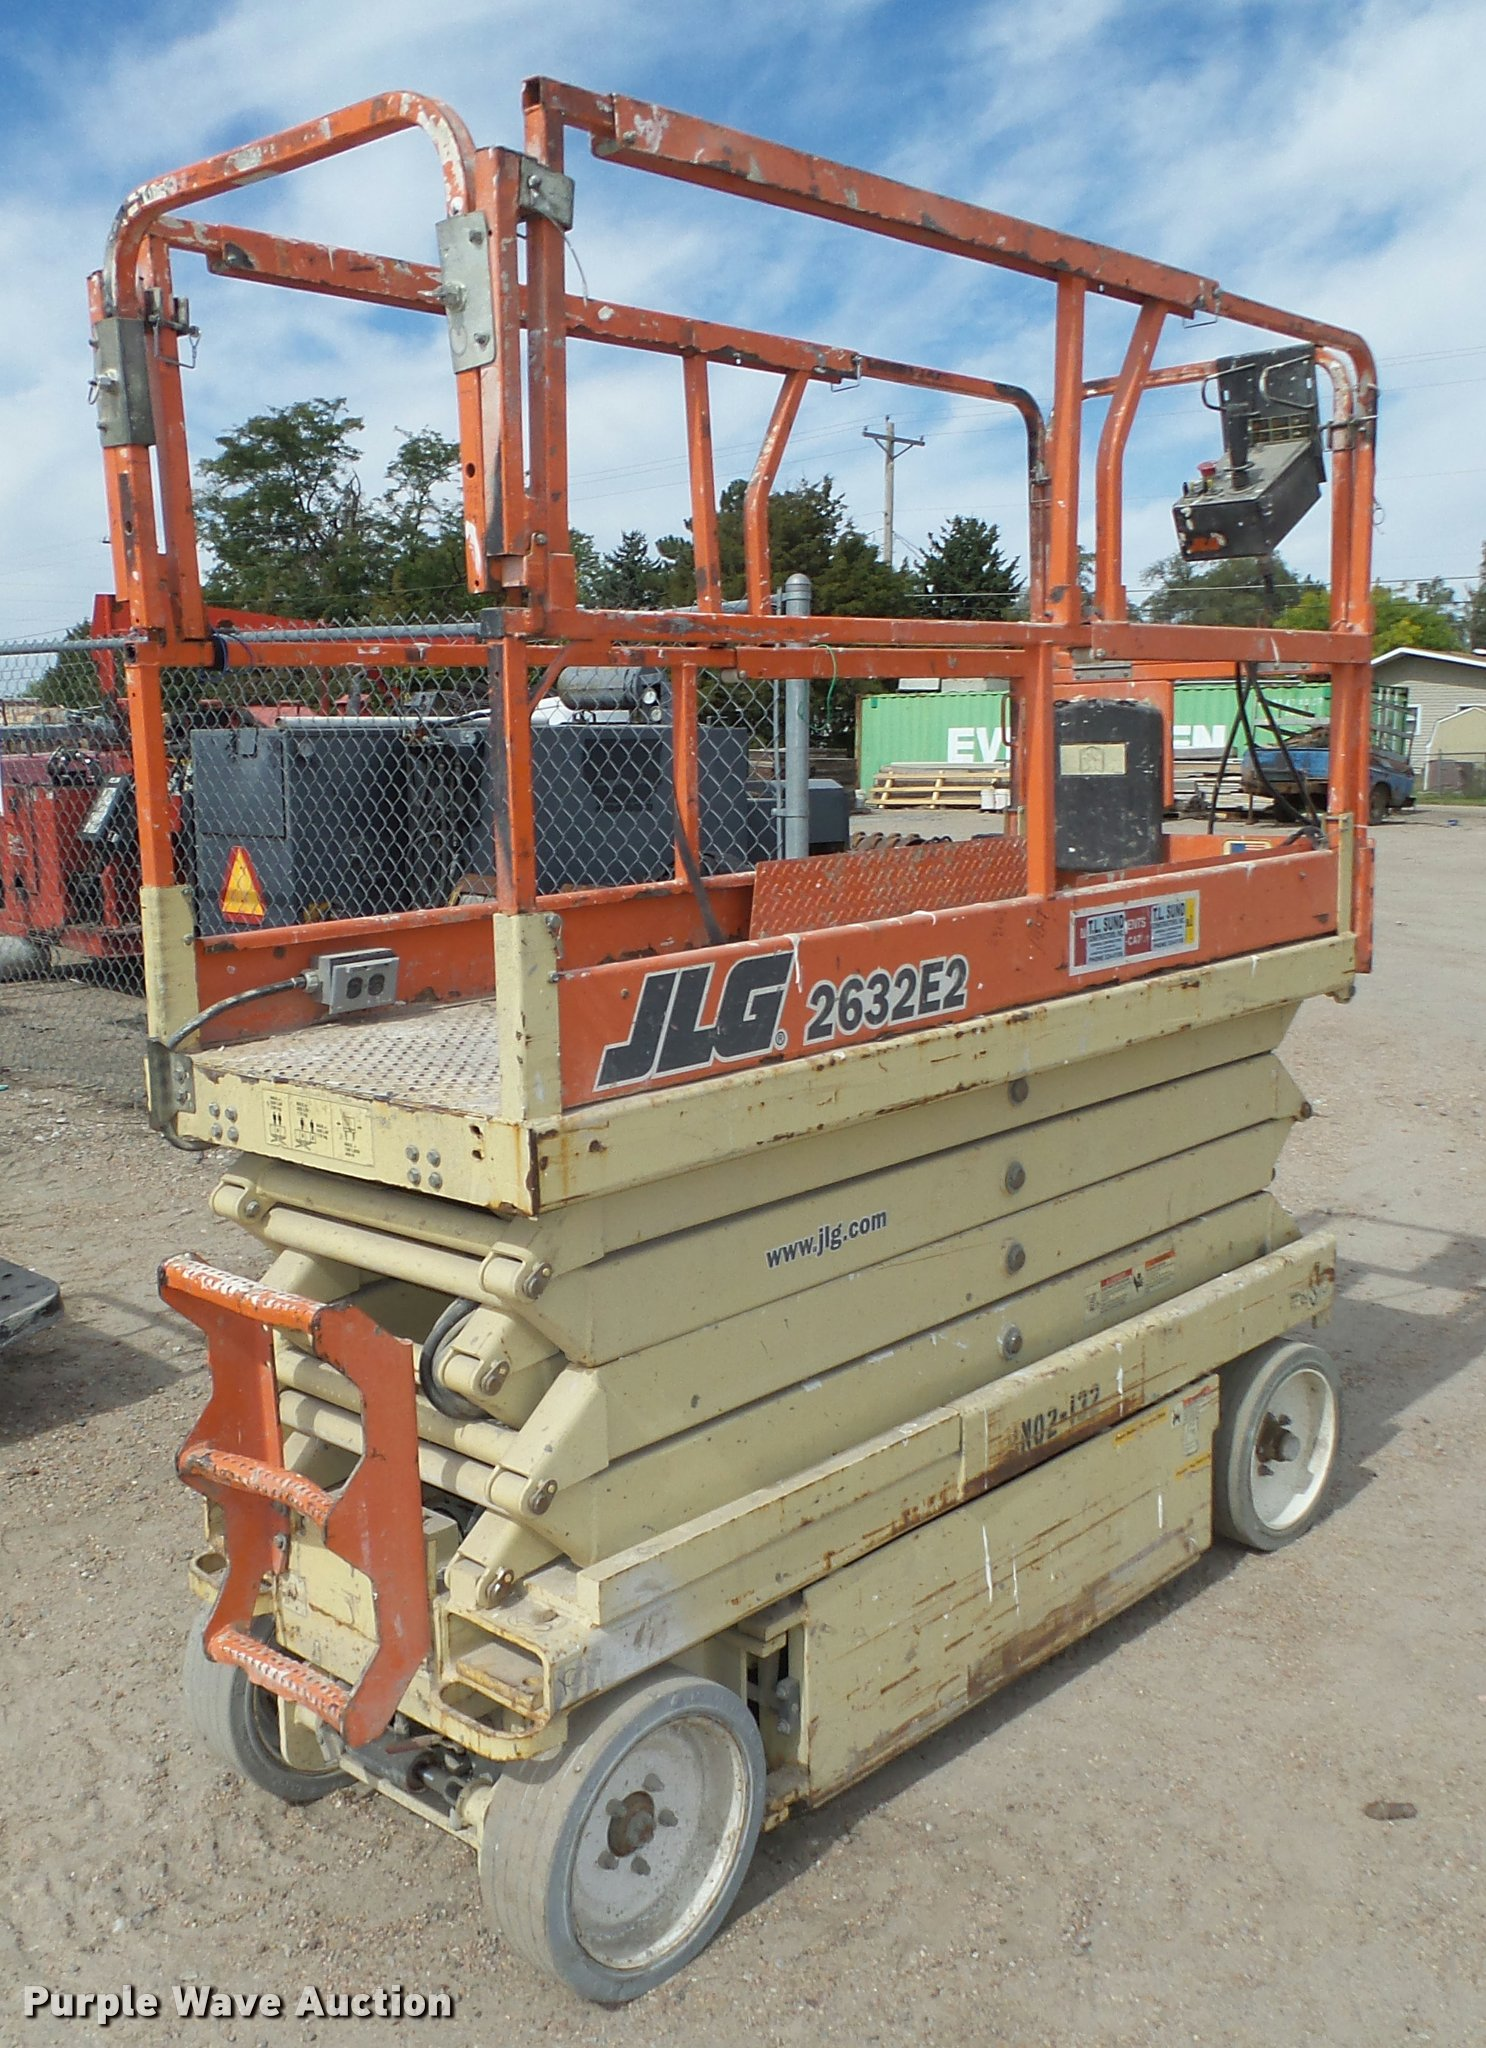 Jlg 2632e2 Spec Wiring Diagram E Scissor Lift Item Sold October Cons 1486x2048